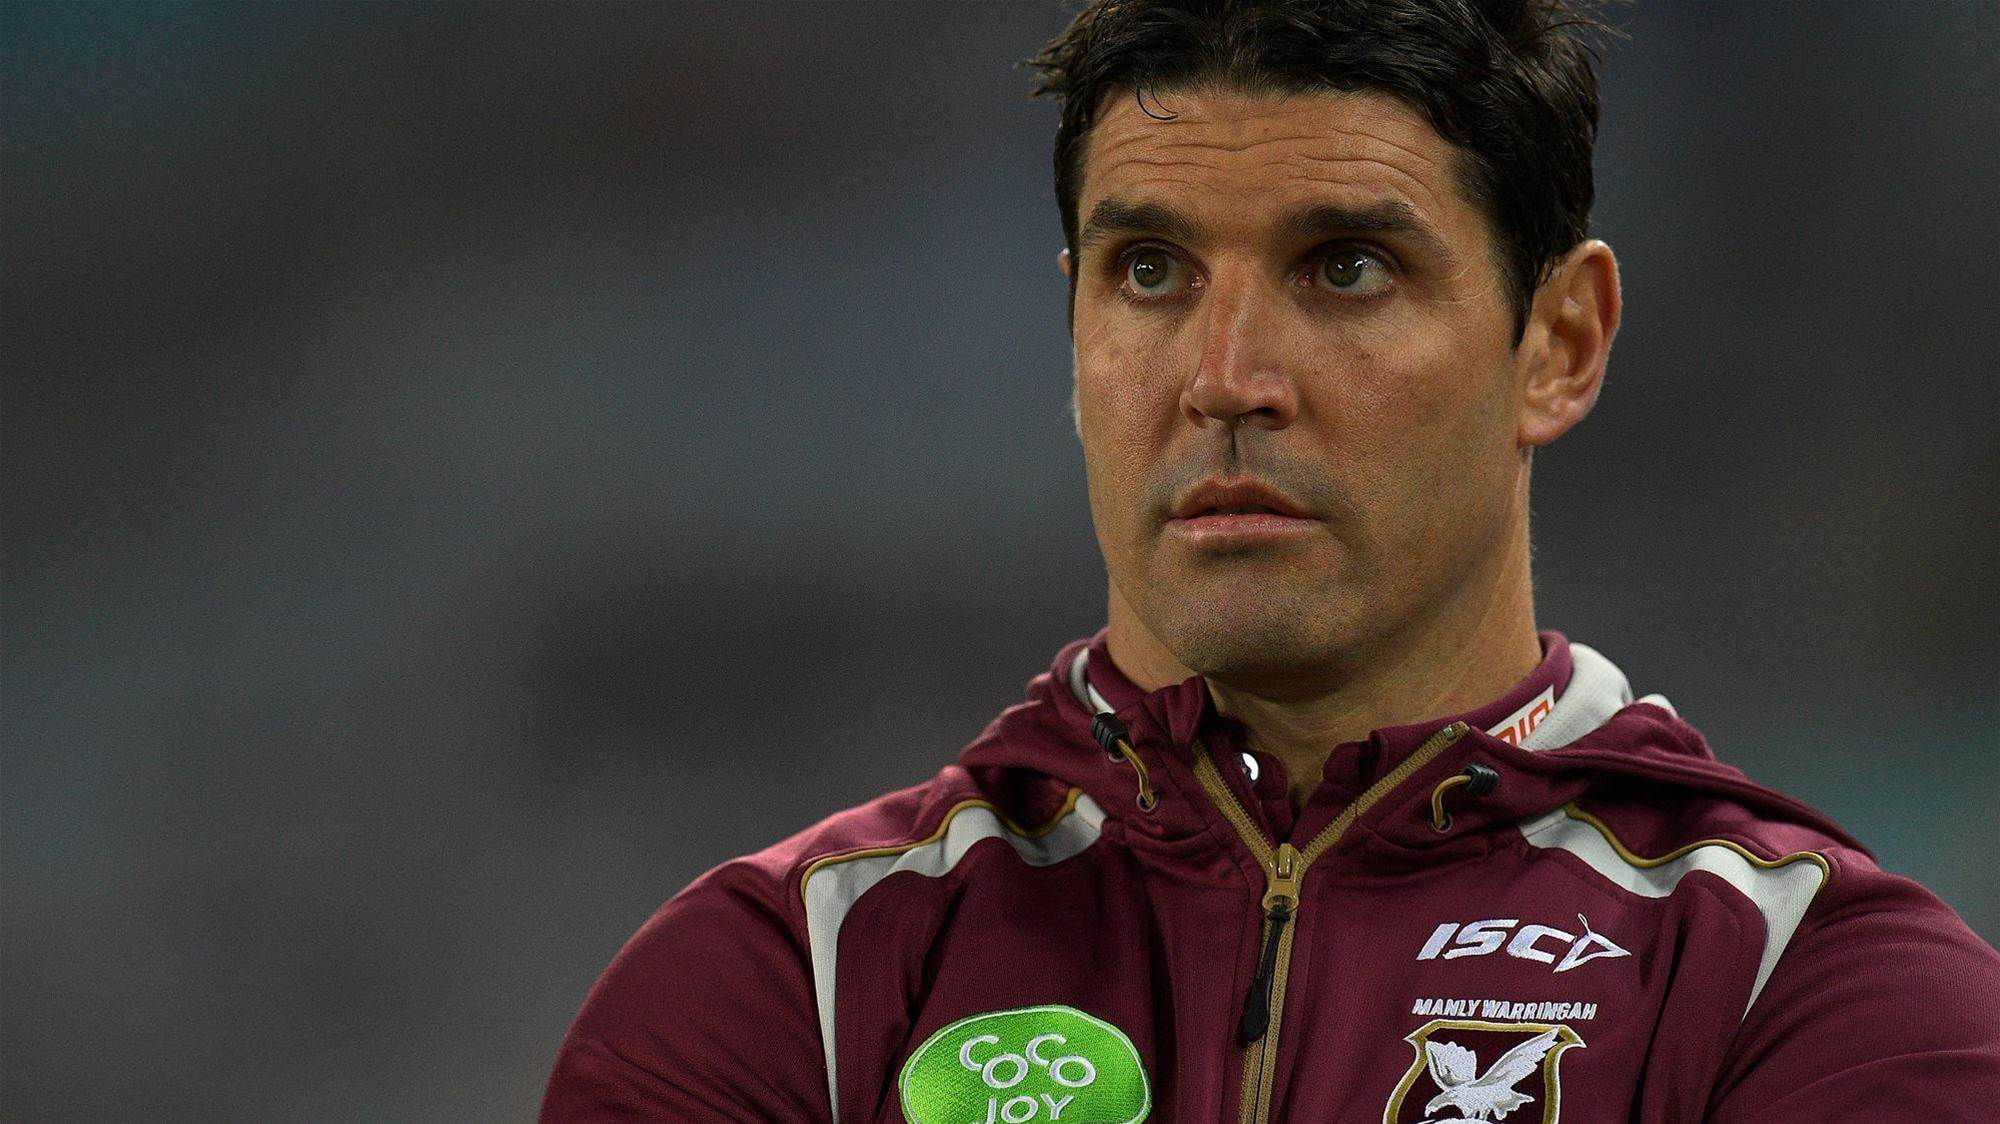 Sea Eagles player's career is over